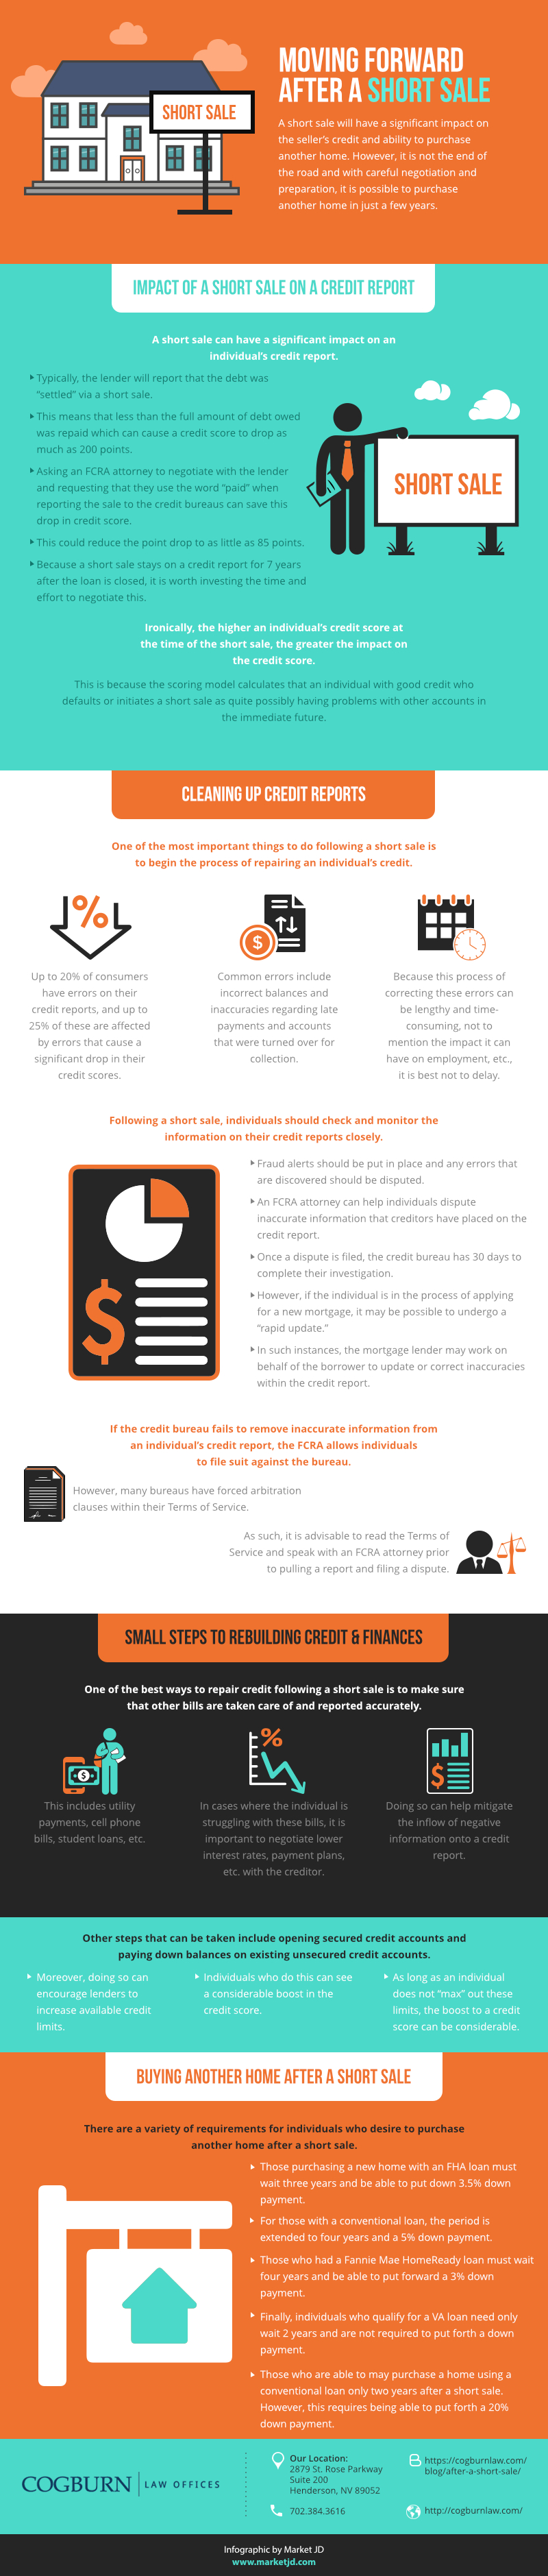 infographic_What To Do After a Short Sale